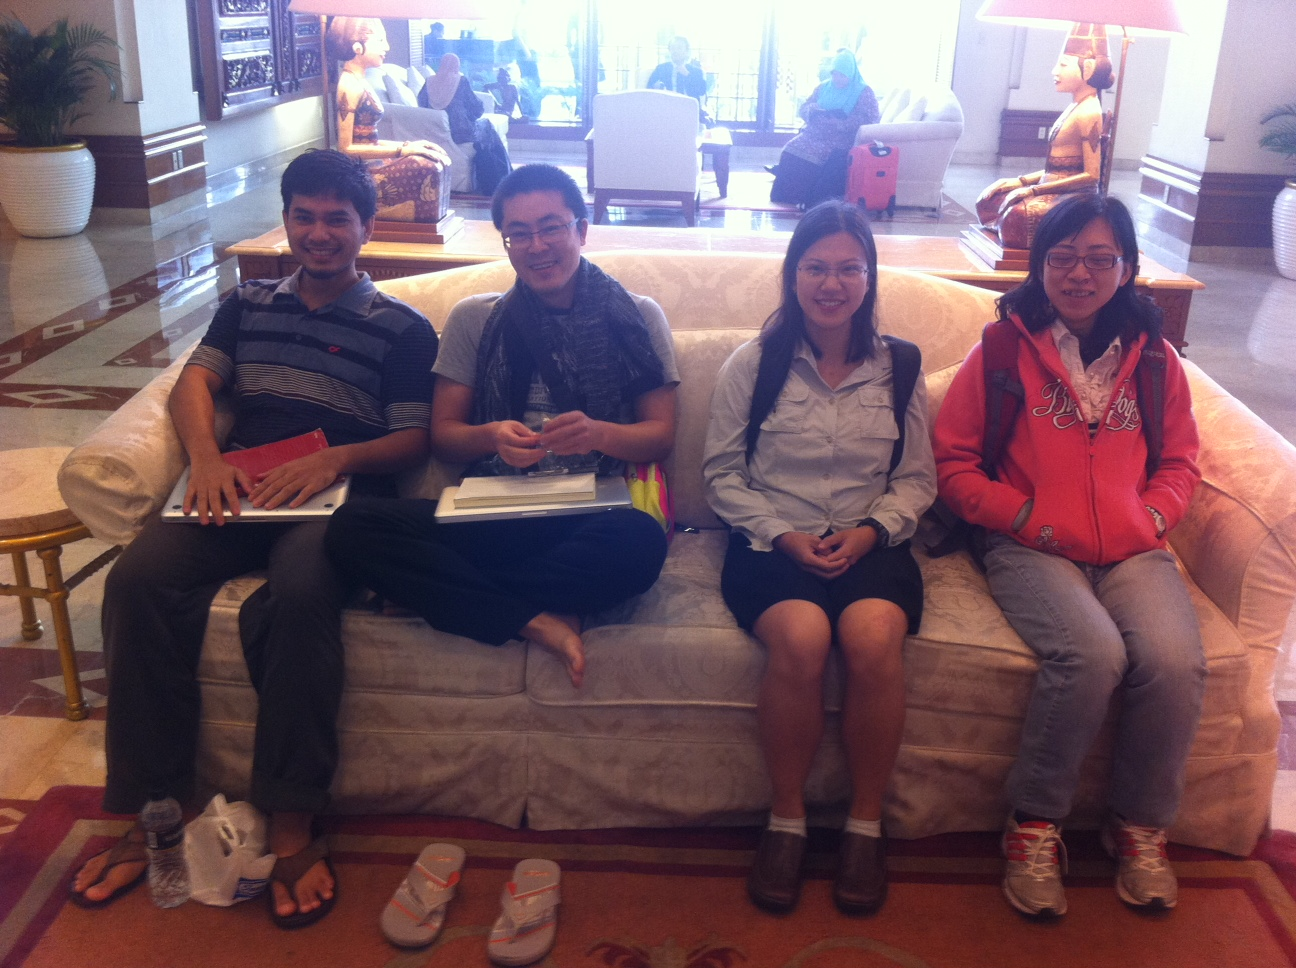 Group - waiting in the lobby